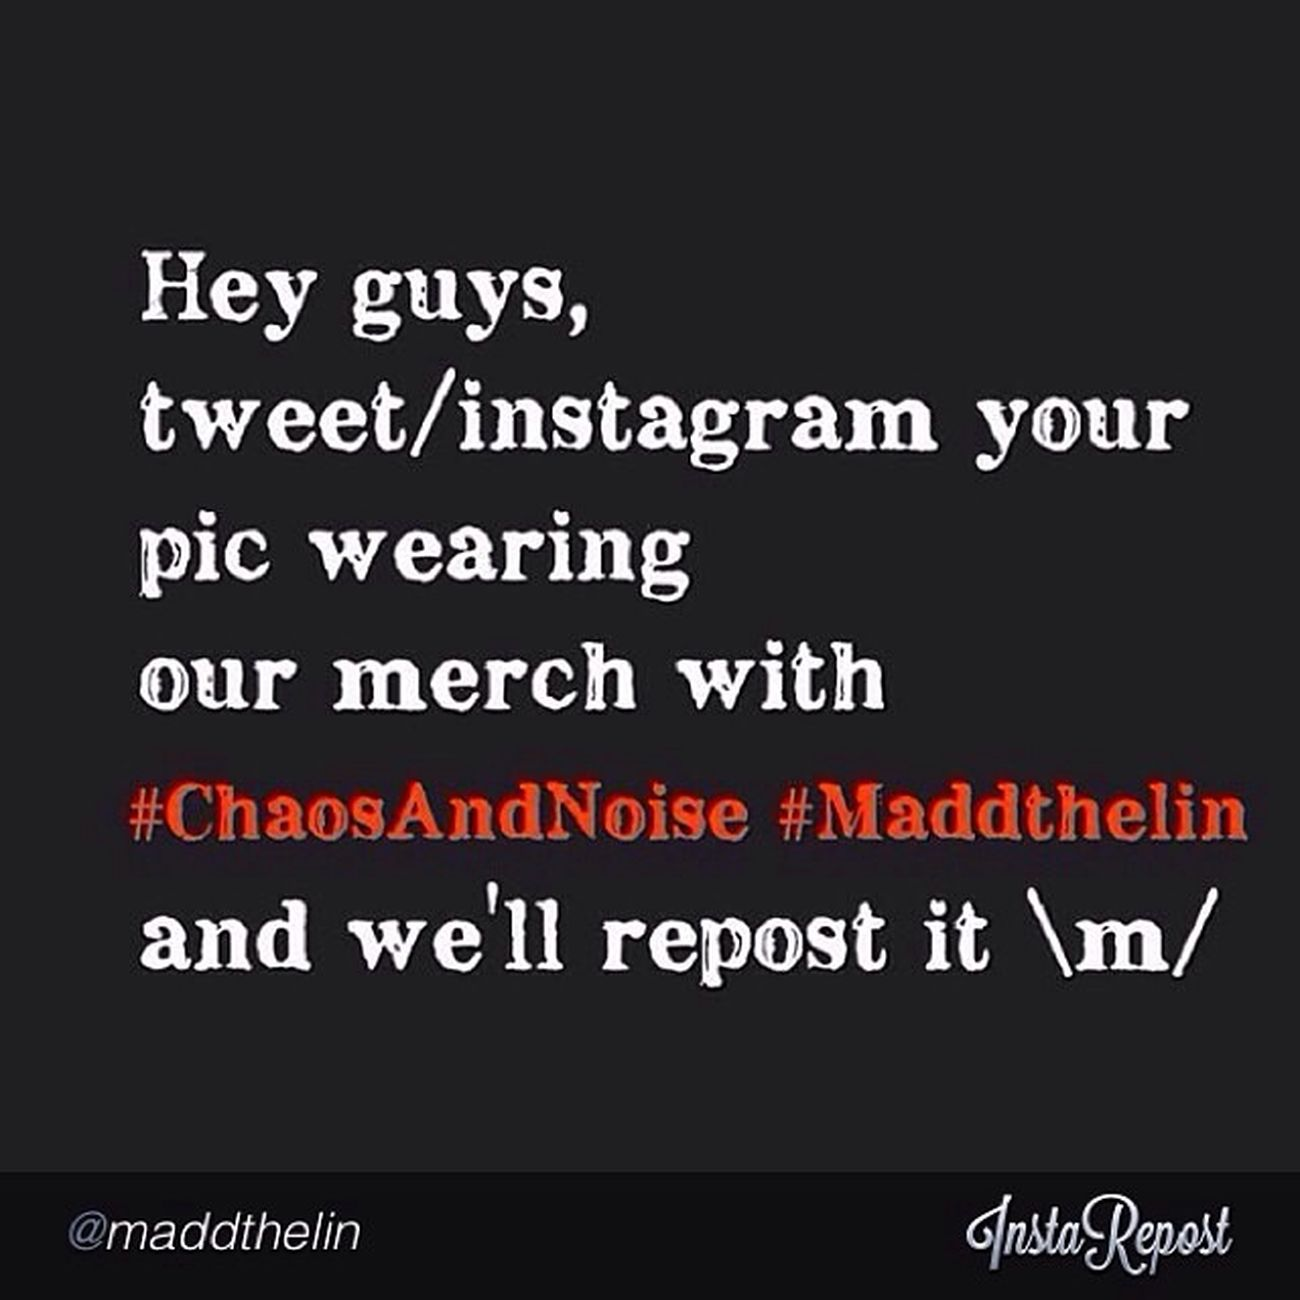 DO IT Maddthelin ChaosAndNoise